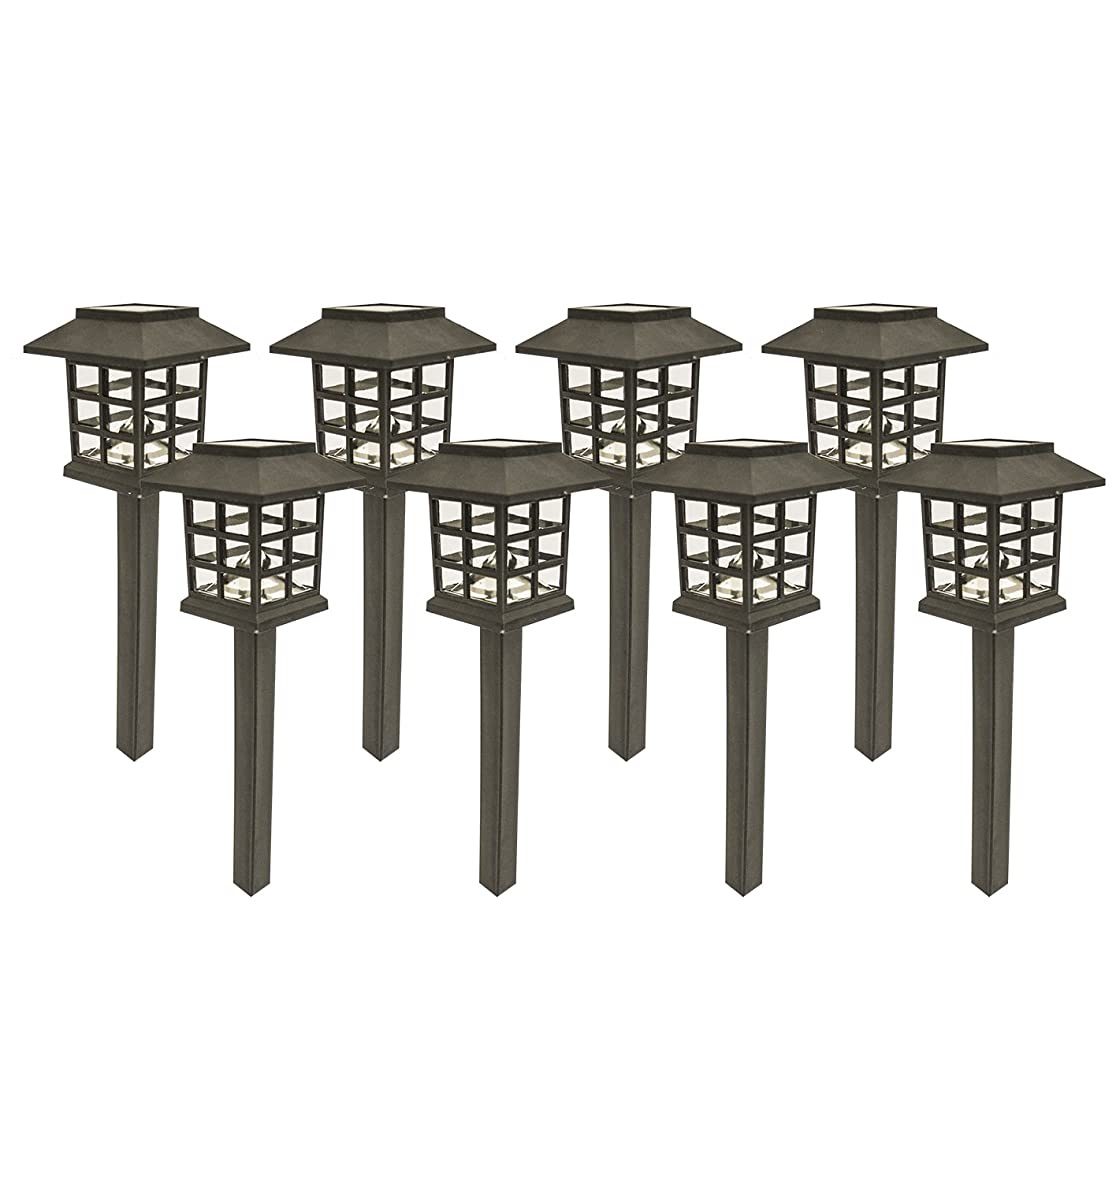 Sogrand 8pcs-Pack,Solar Lights Outdoor,Solar Light,Landscape Lighting,Solar Pathway Lights,for Lawn,Patio,Yard,Walkway,Driveway,Pathway,Garden,Landscape